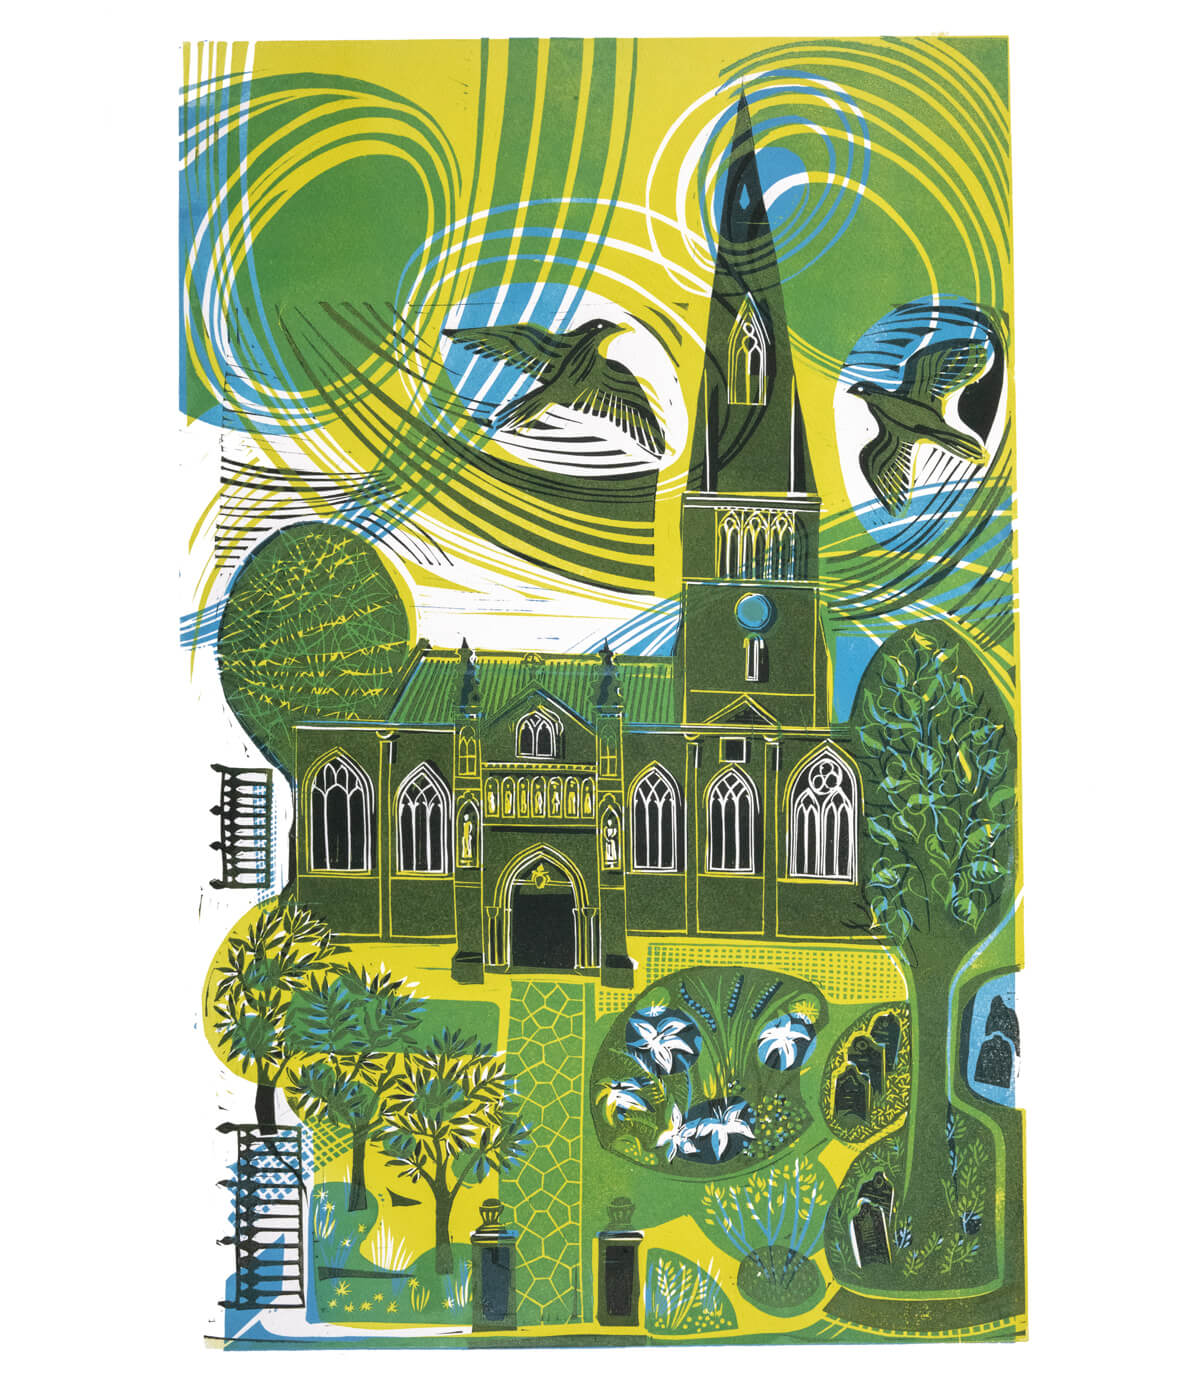 The Cathedral, The Gardens and The Peregrines in Yellow/Blue, a linocut print by Sarah Kirby